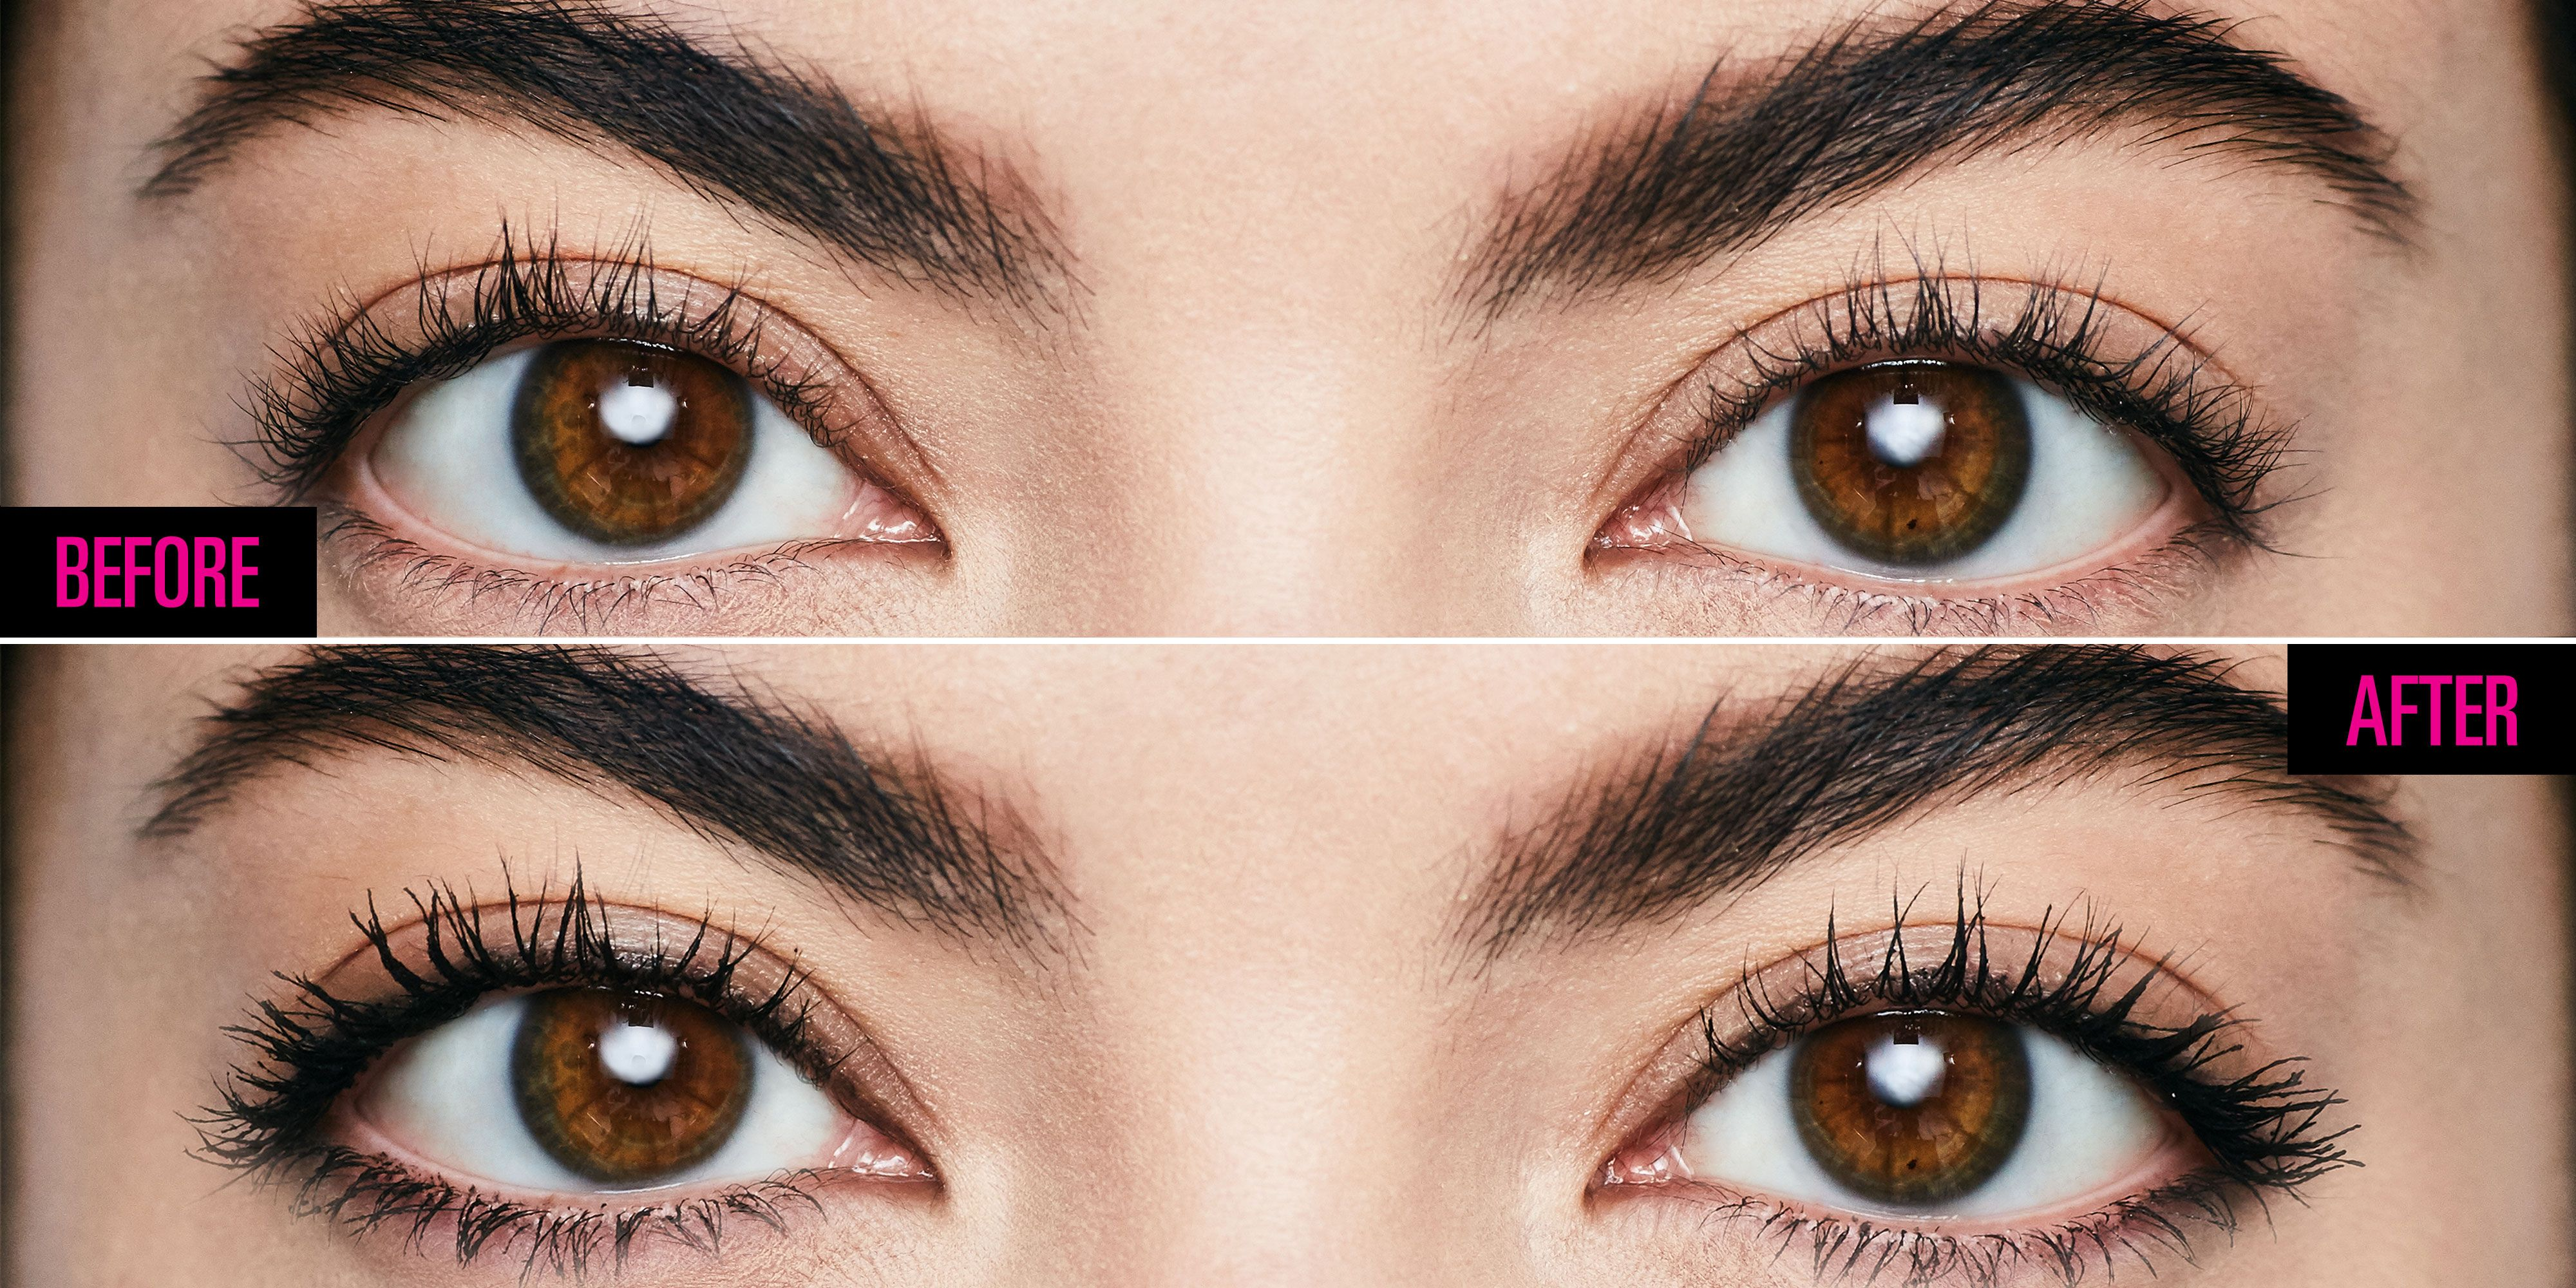 10 Things Women With Great Eyelashes Do